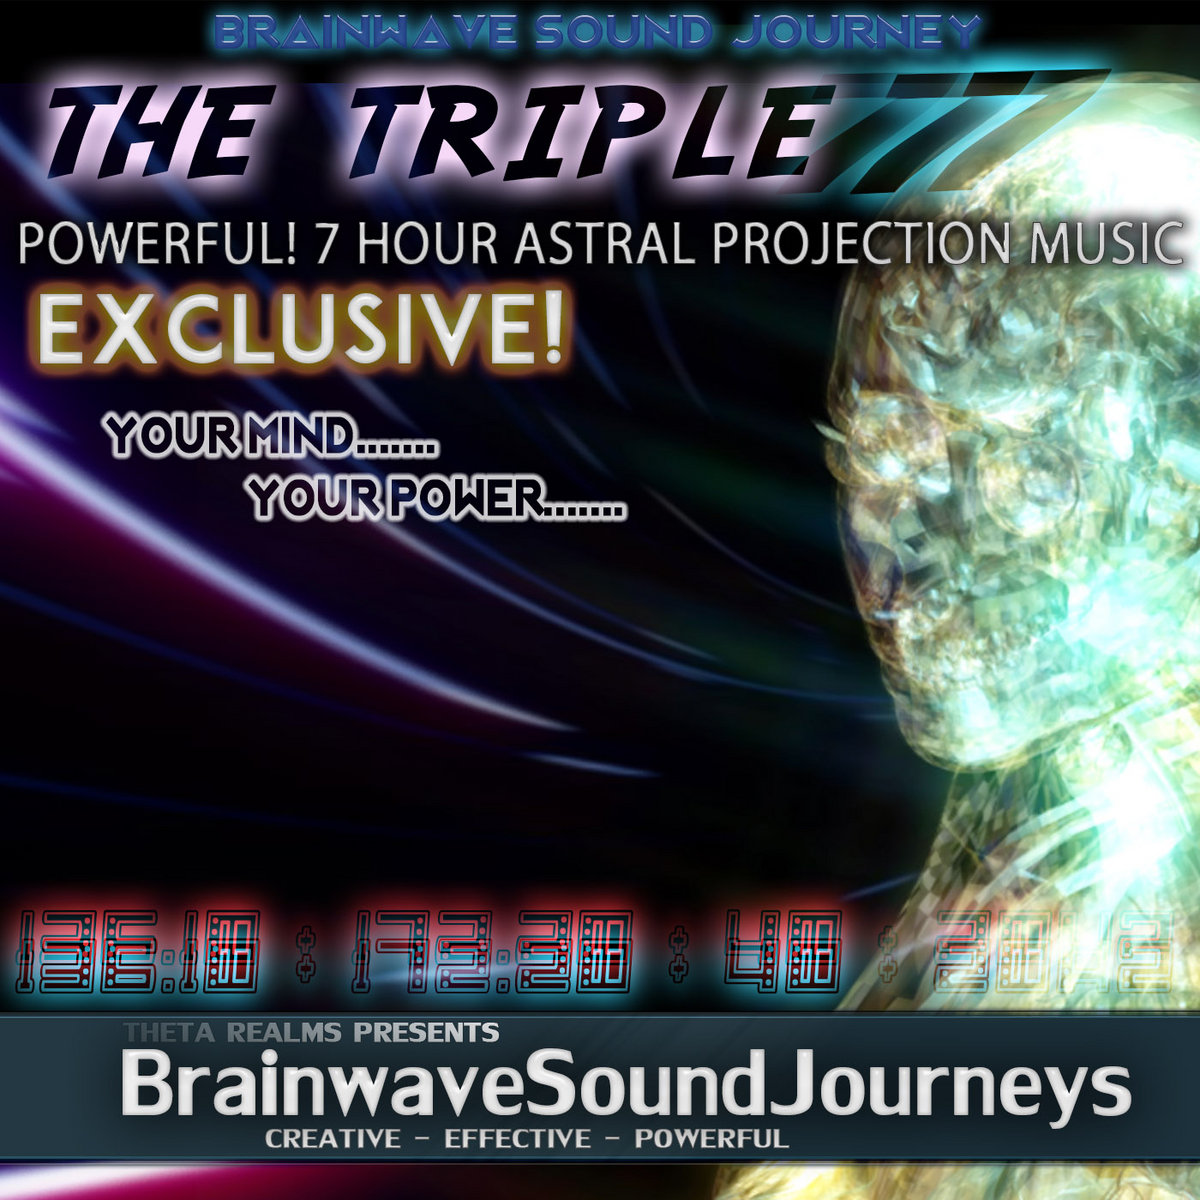 777 HZ | POWERFUL POTENCY!!! 7 HOURS ASTRAL PROJECTION